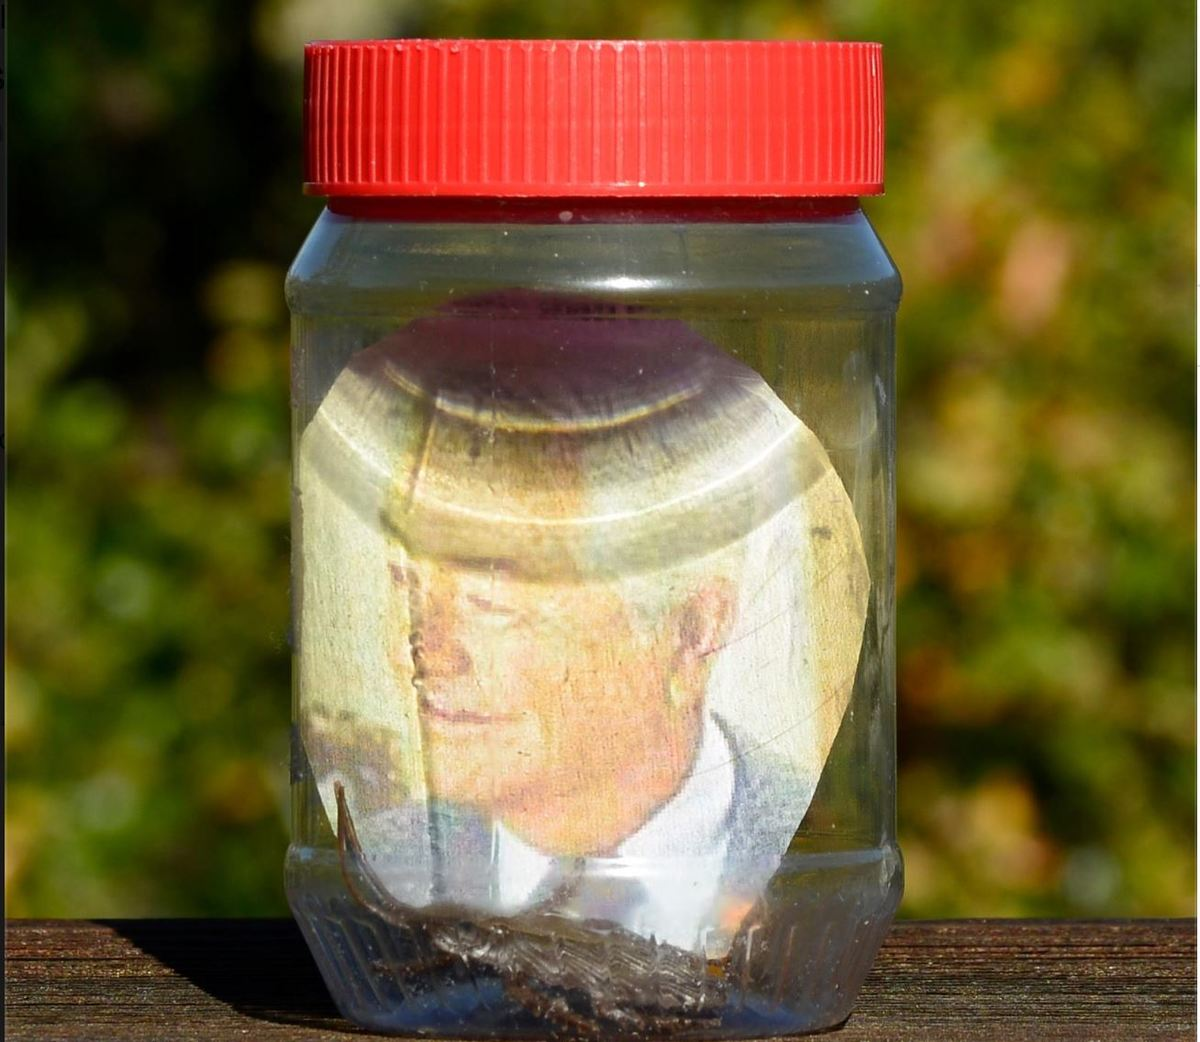 the five friends' jar with a photo and a cockroach